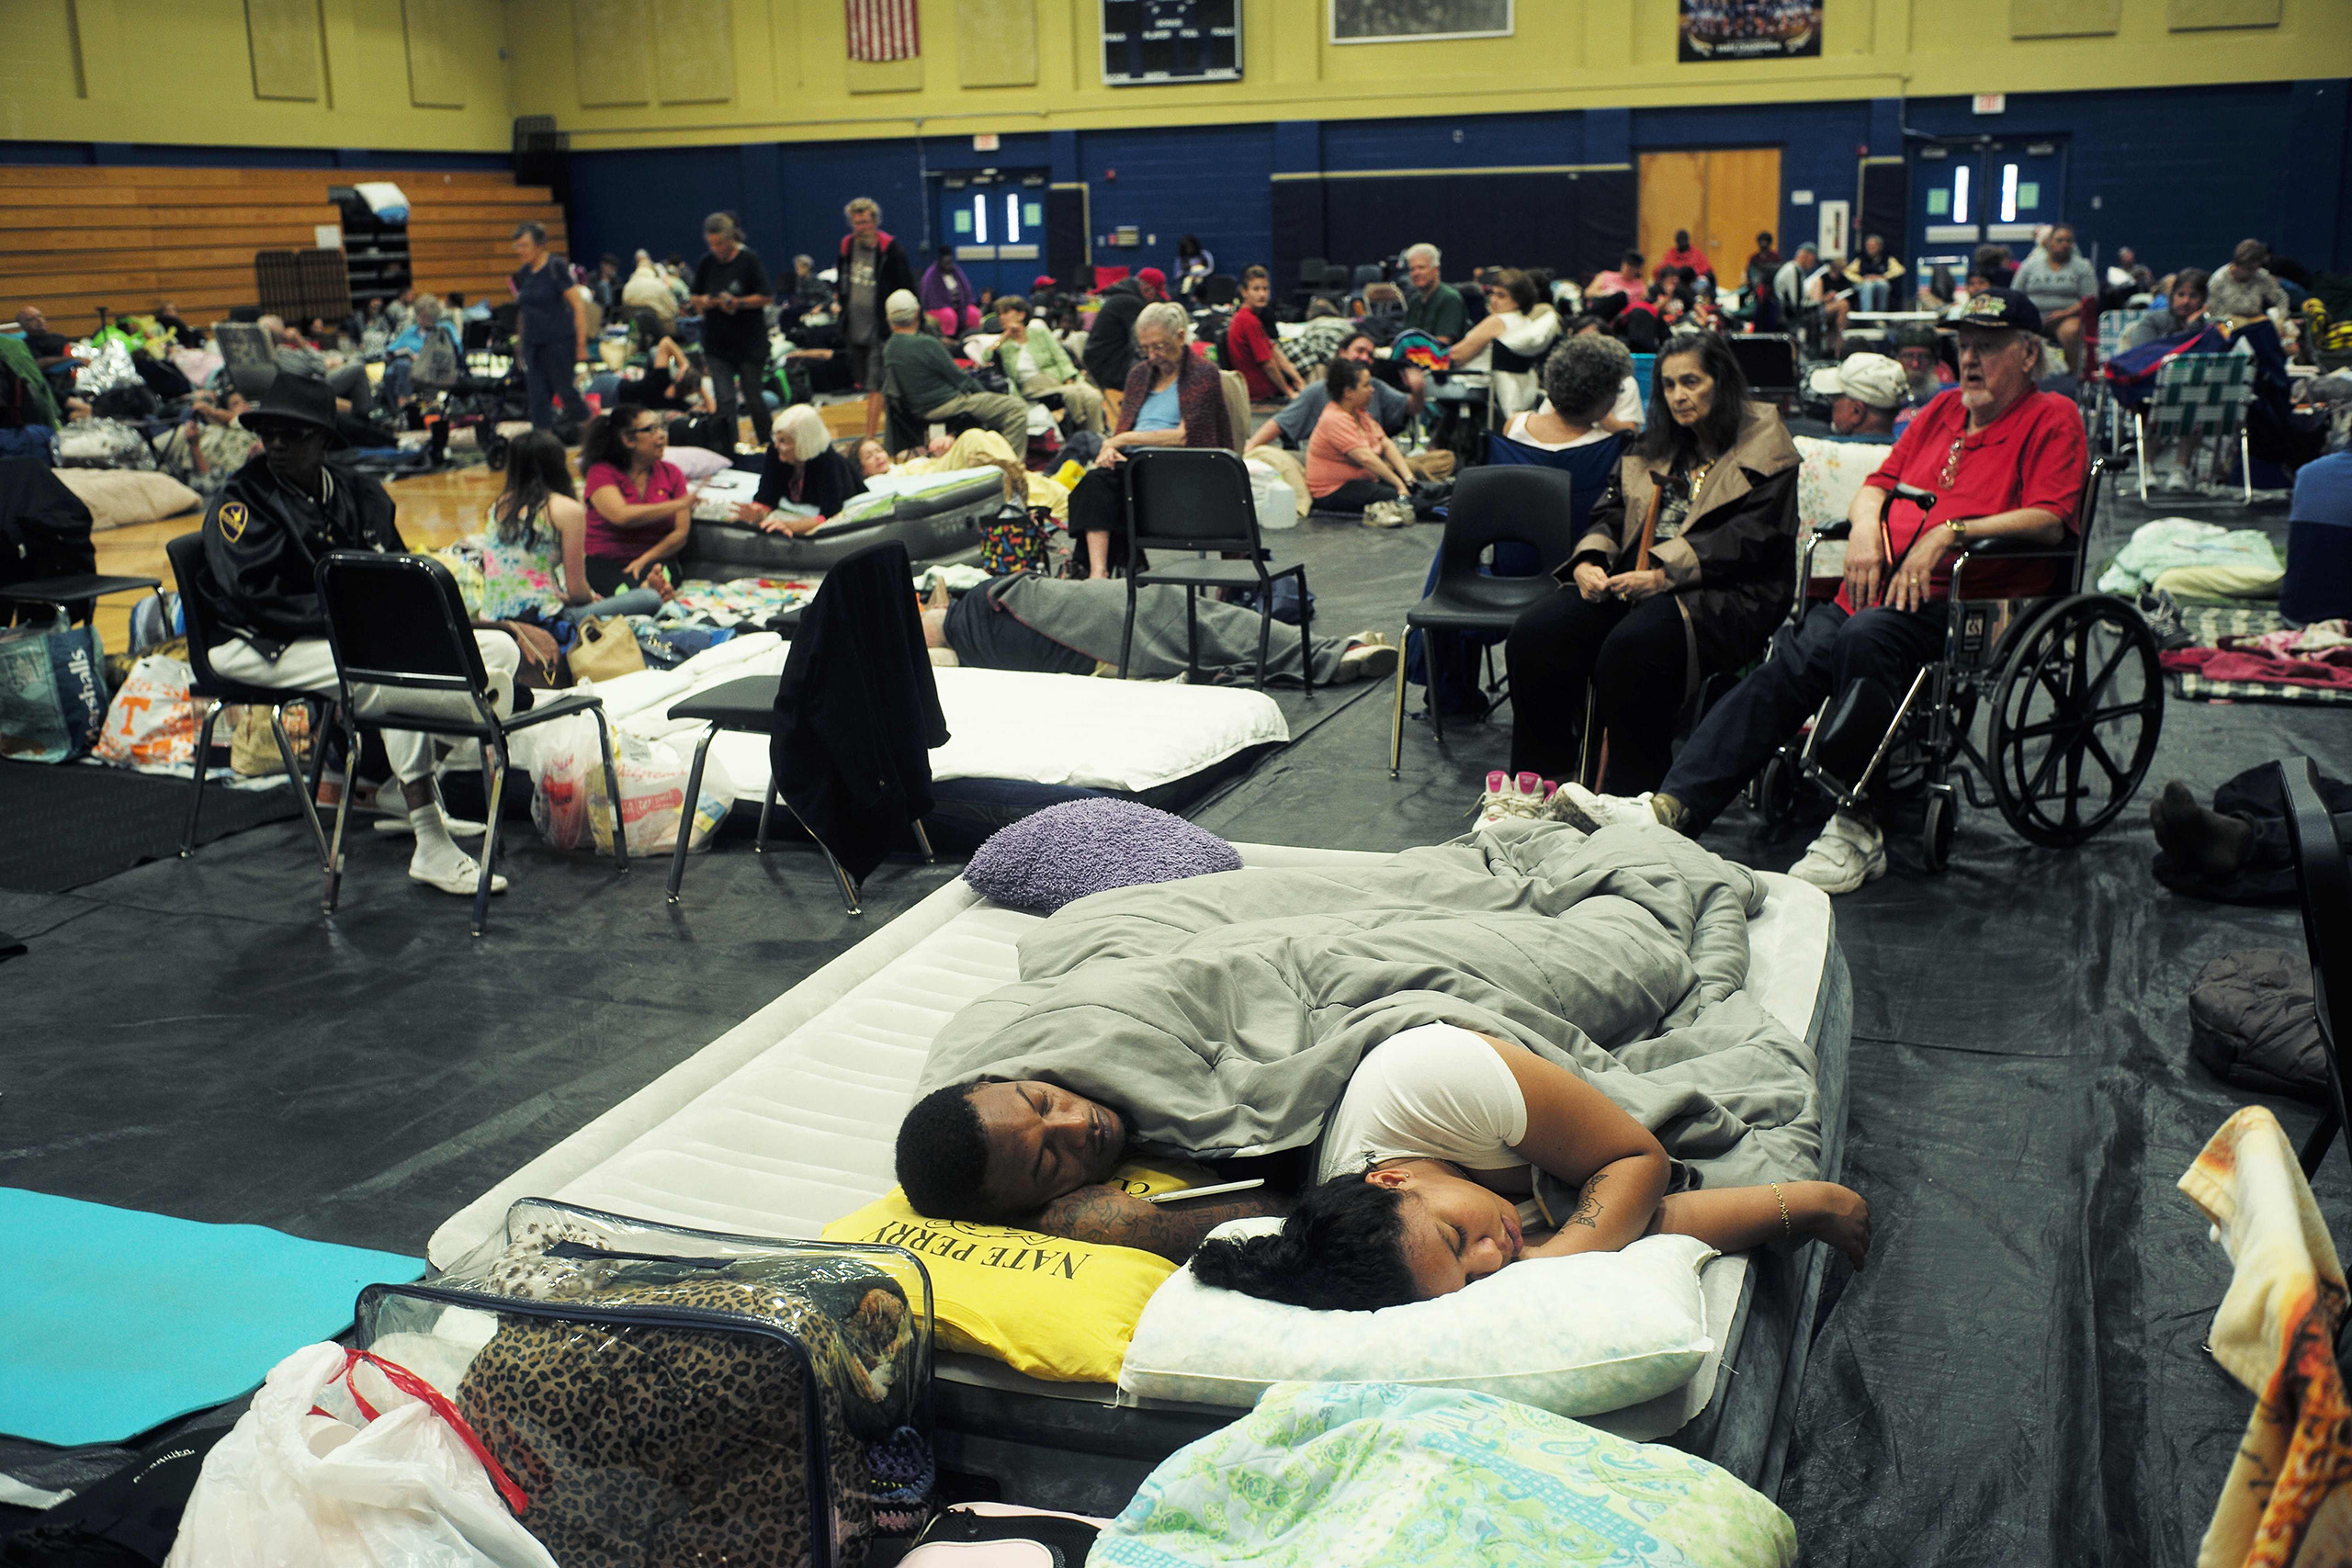 Local residents take shelter at the Pedro Menendez high school in St. Augustine, Fla., on Oct. 6, 2016.